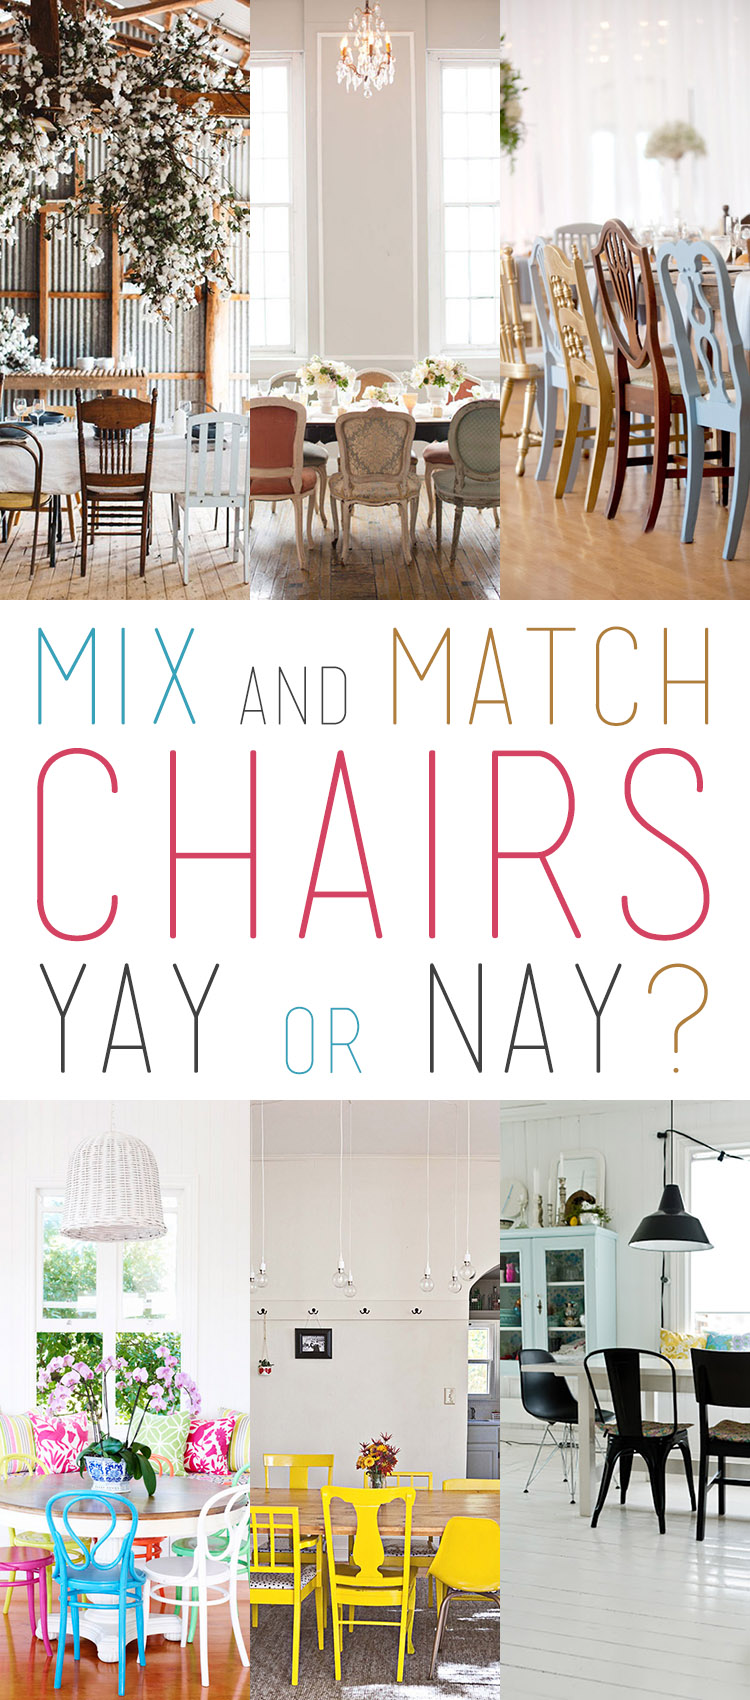 MixandMatchChairs-tower-0001